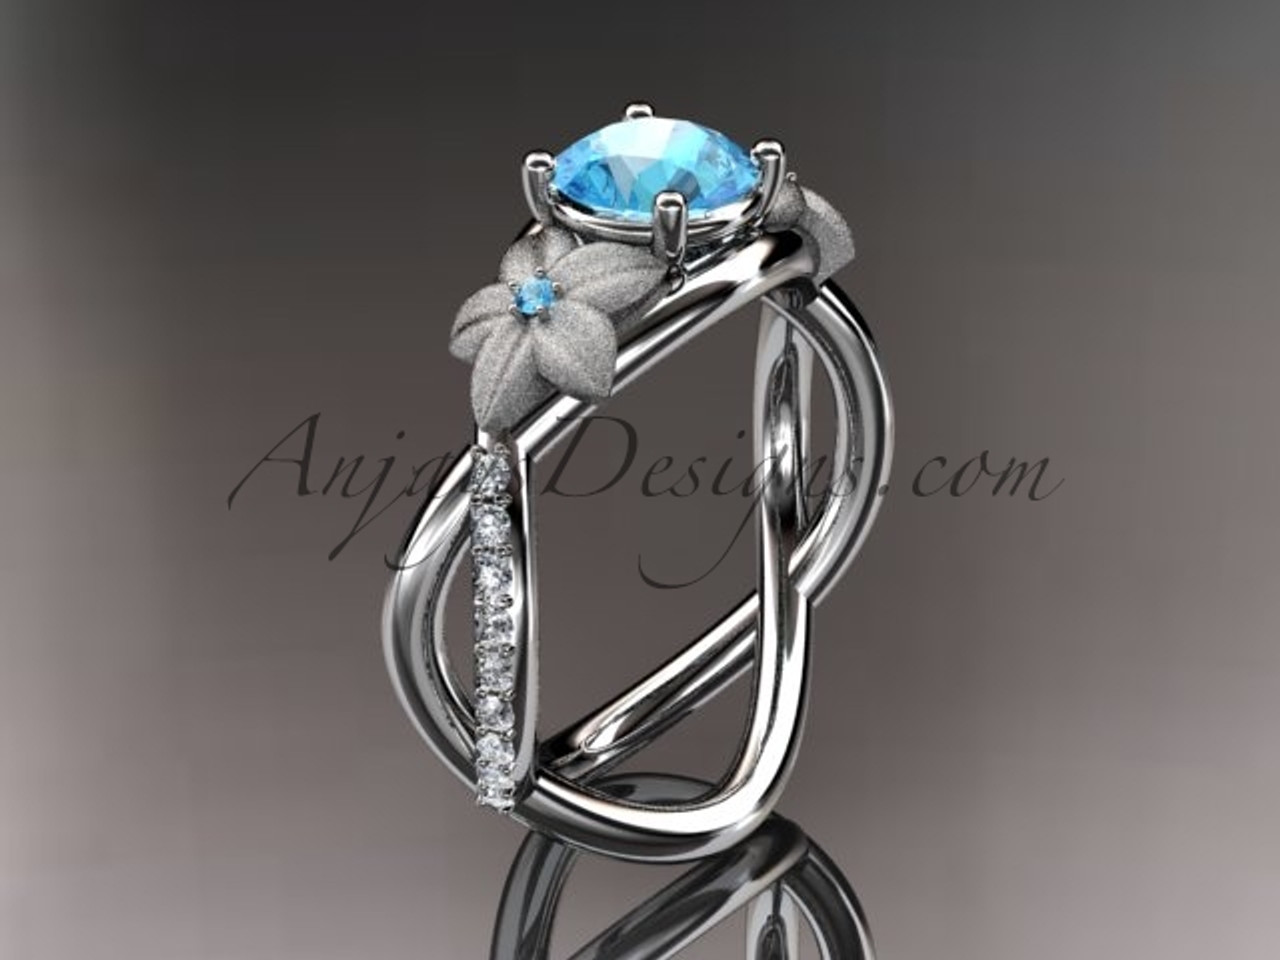 topaz rings com ring cocktail birthstone blue december jewelryblog applesofgold wedding